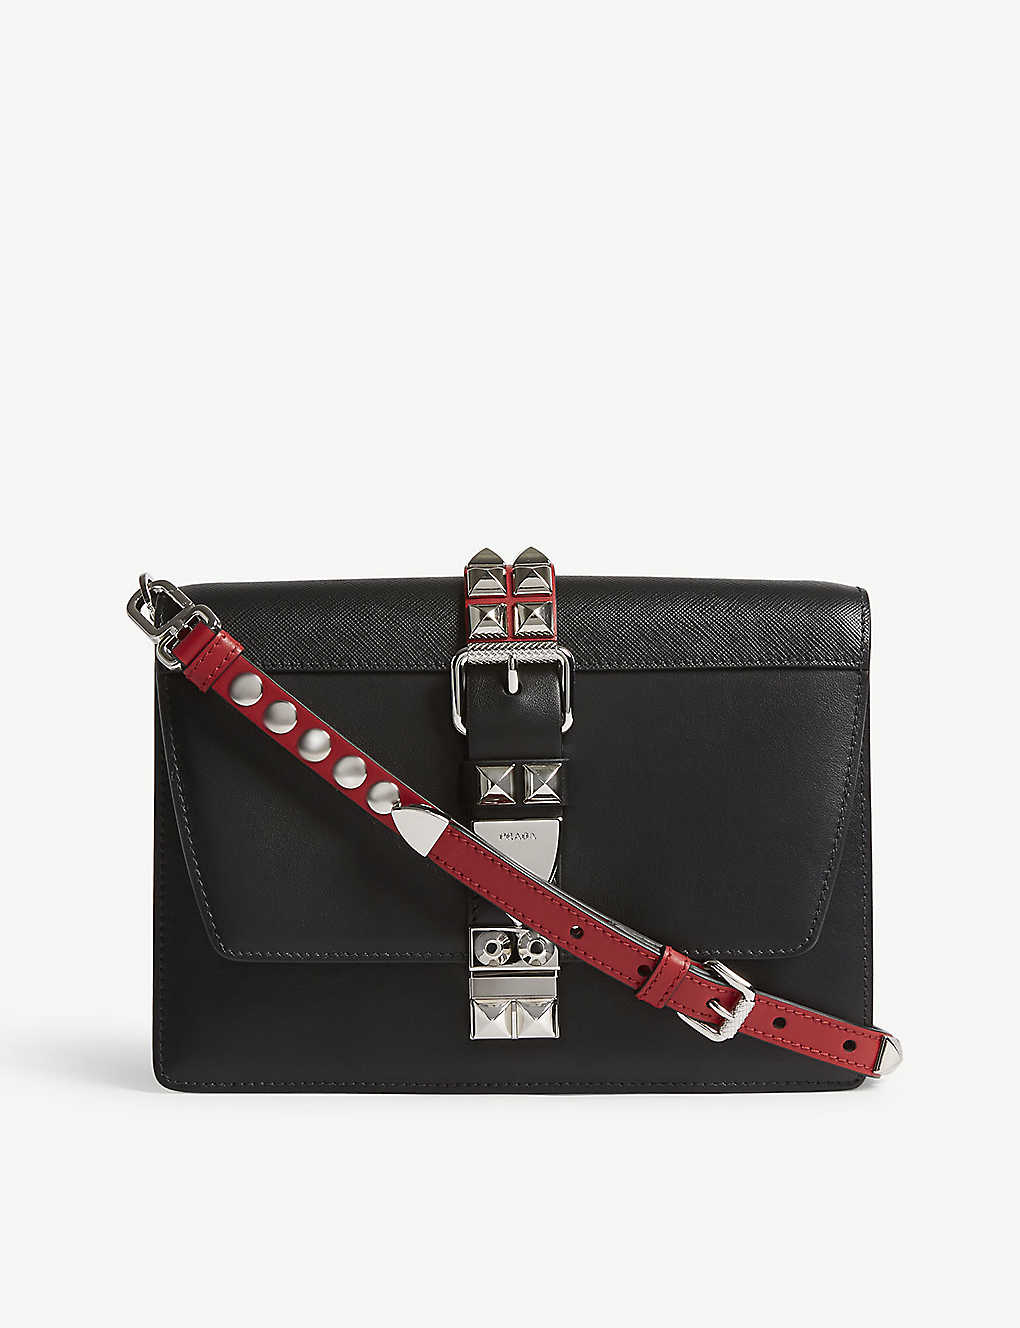 a388c99fea3e5b PRADA - Elektra studded medium leather shoulder bag | Selfridges.com